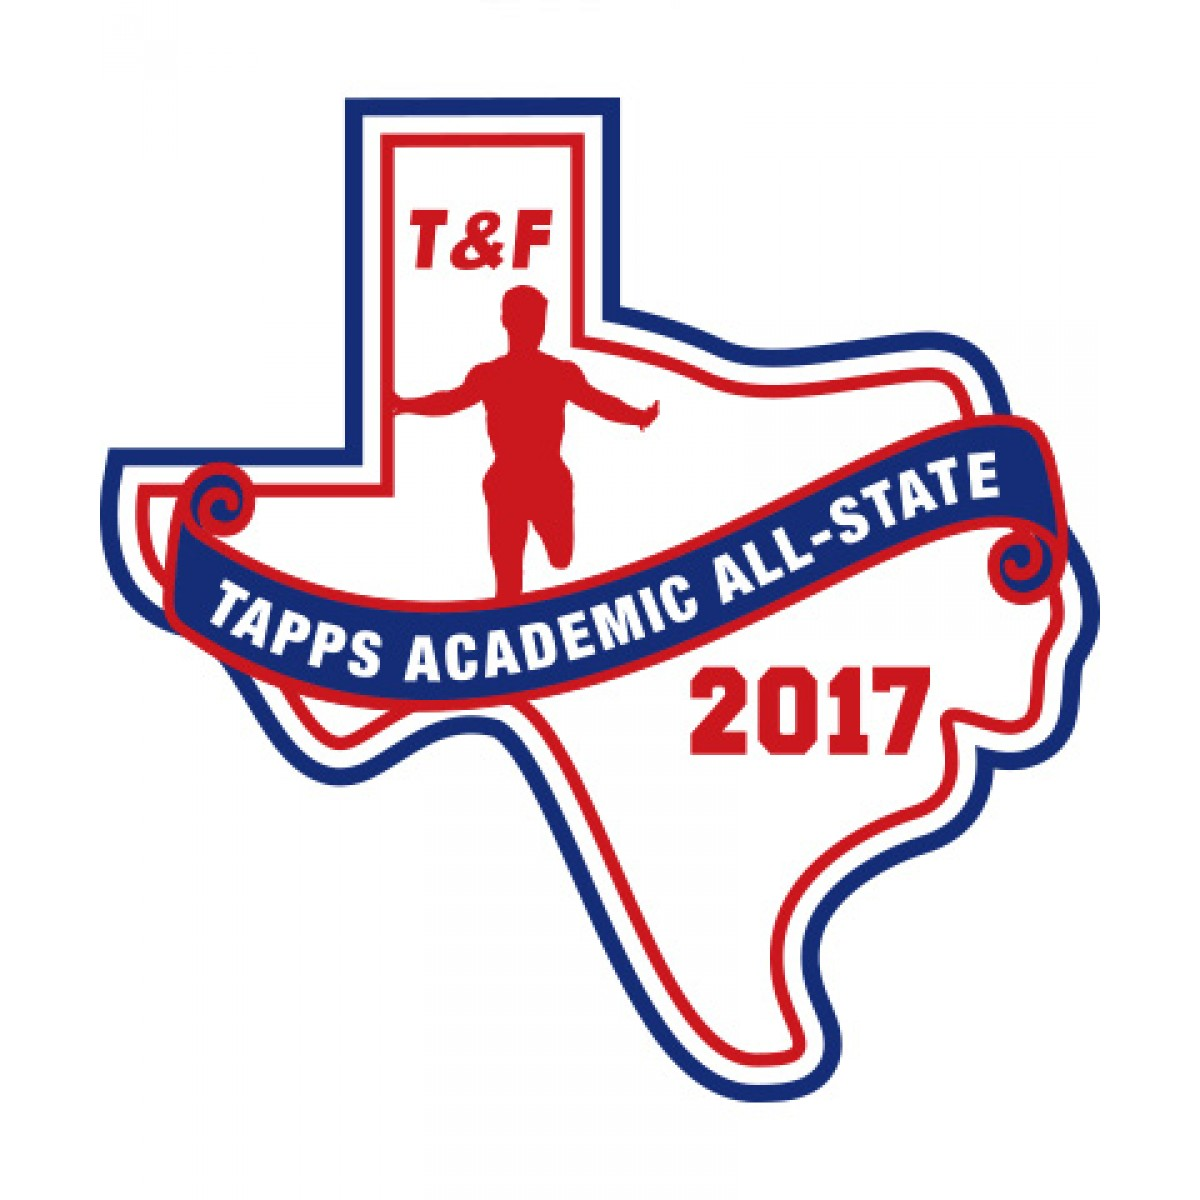 Felt 2017 TAPPS Academic All-State T&F Patch